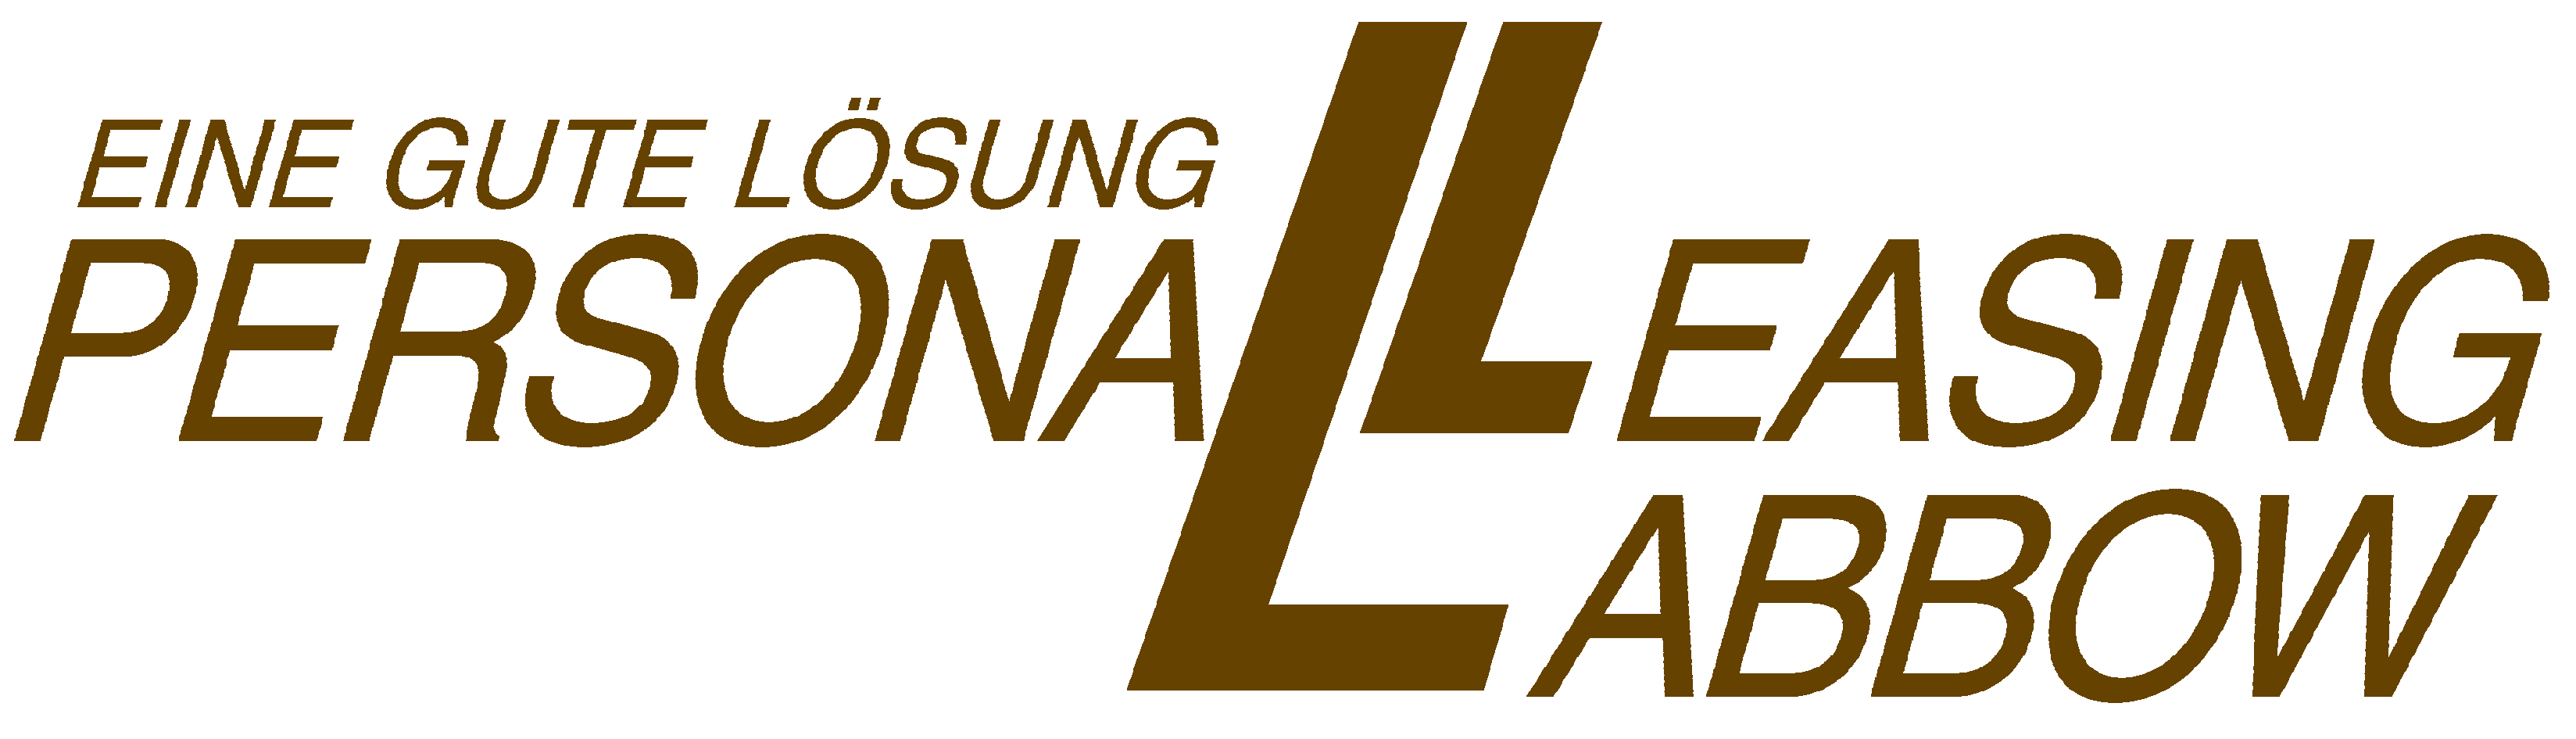 Labbow Personalleasing Logo